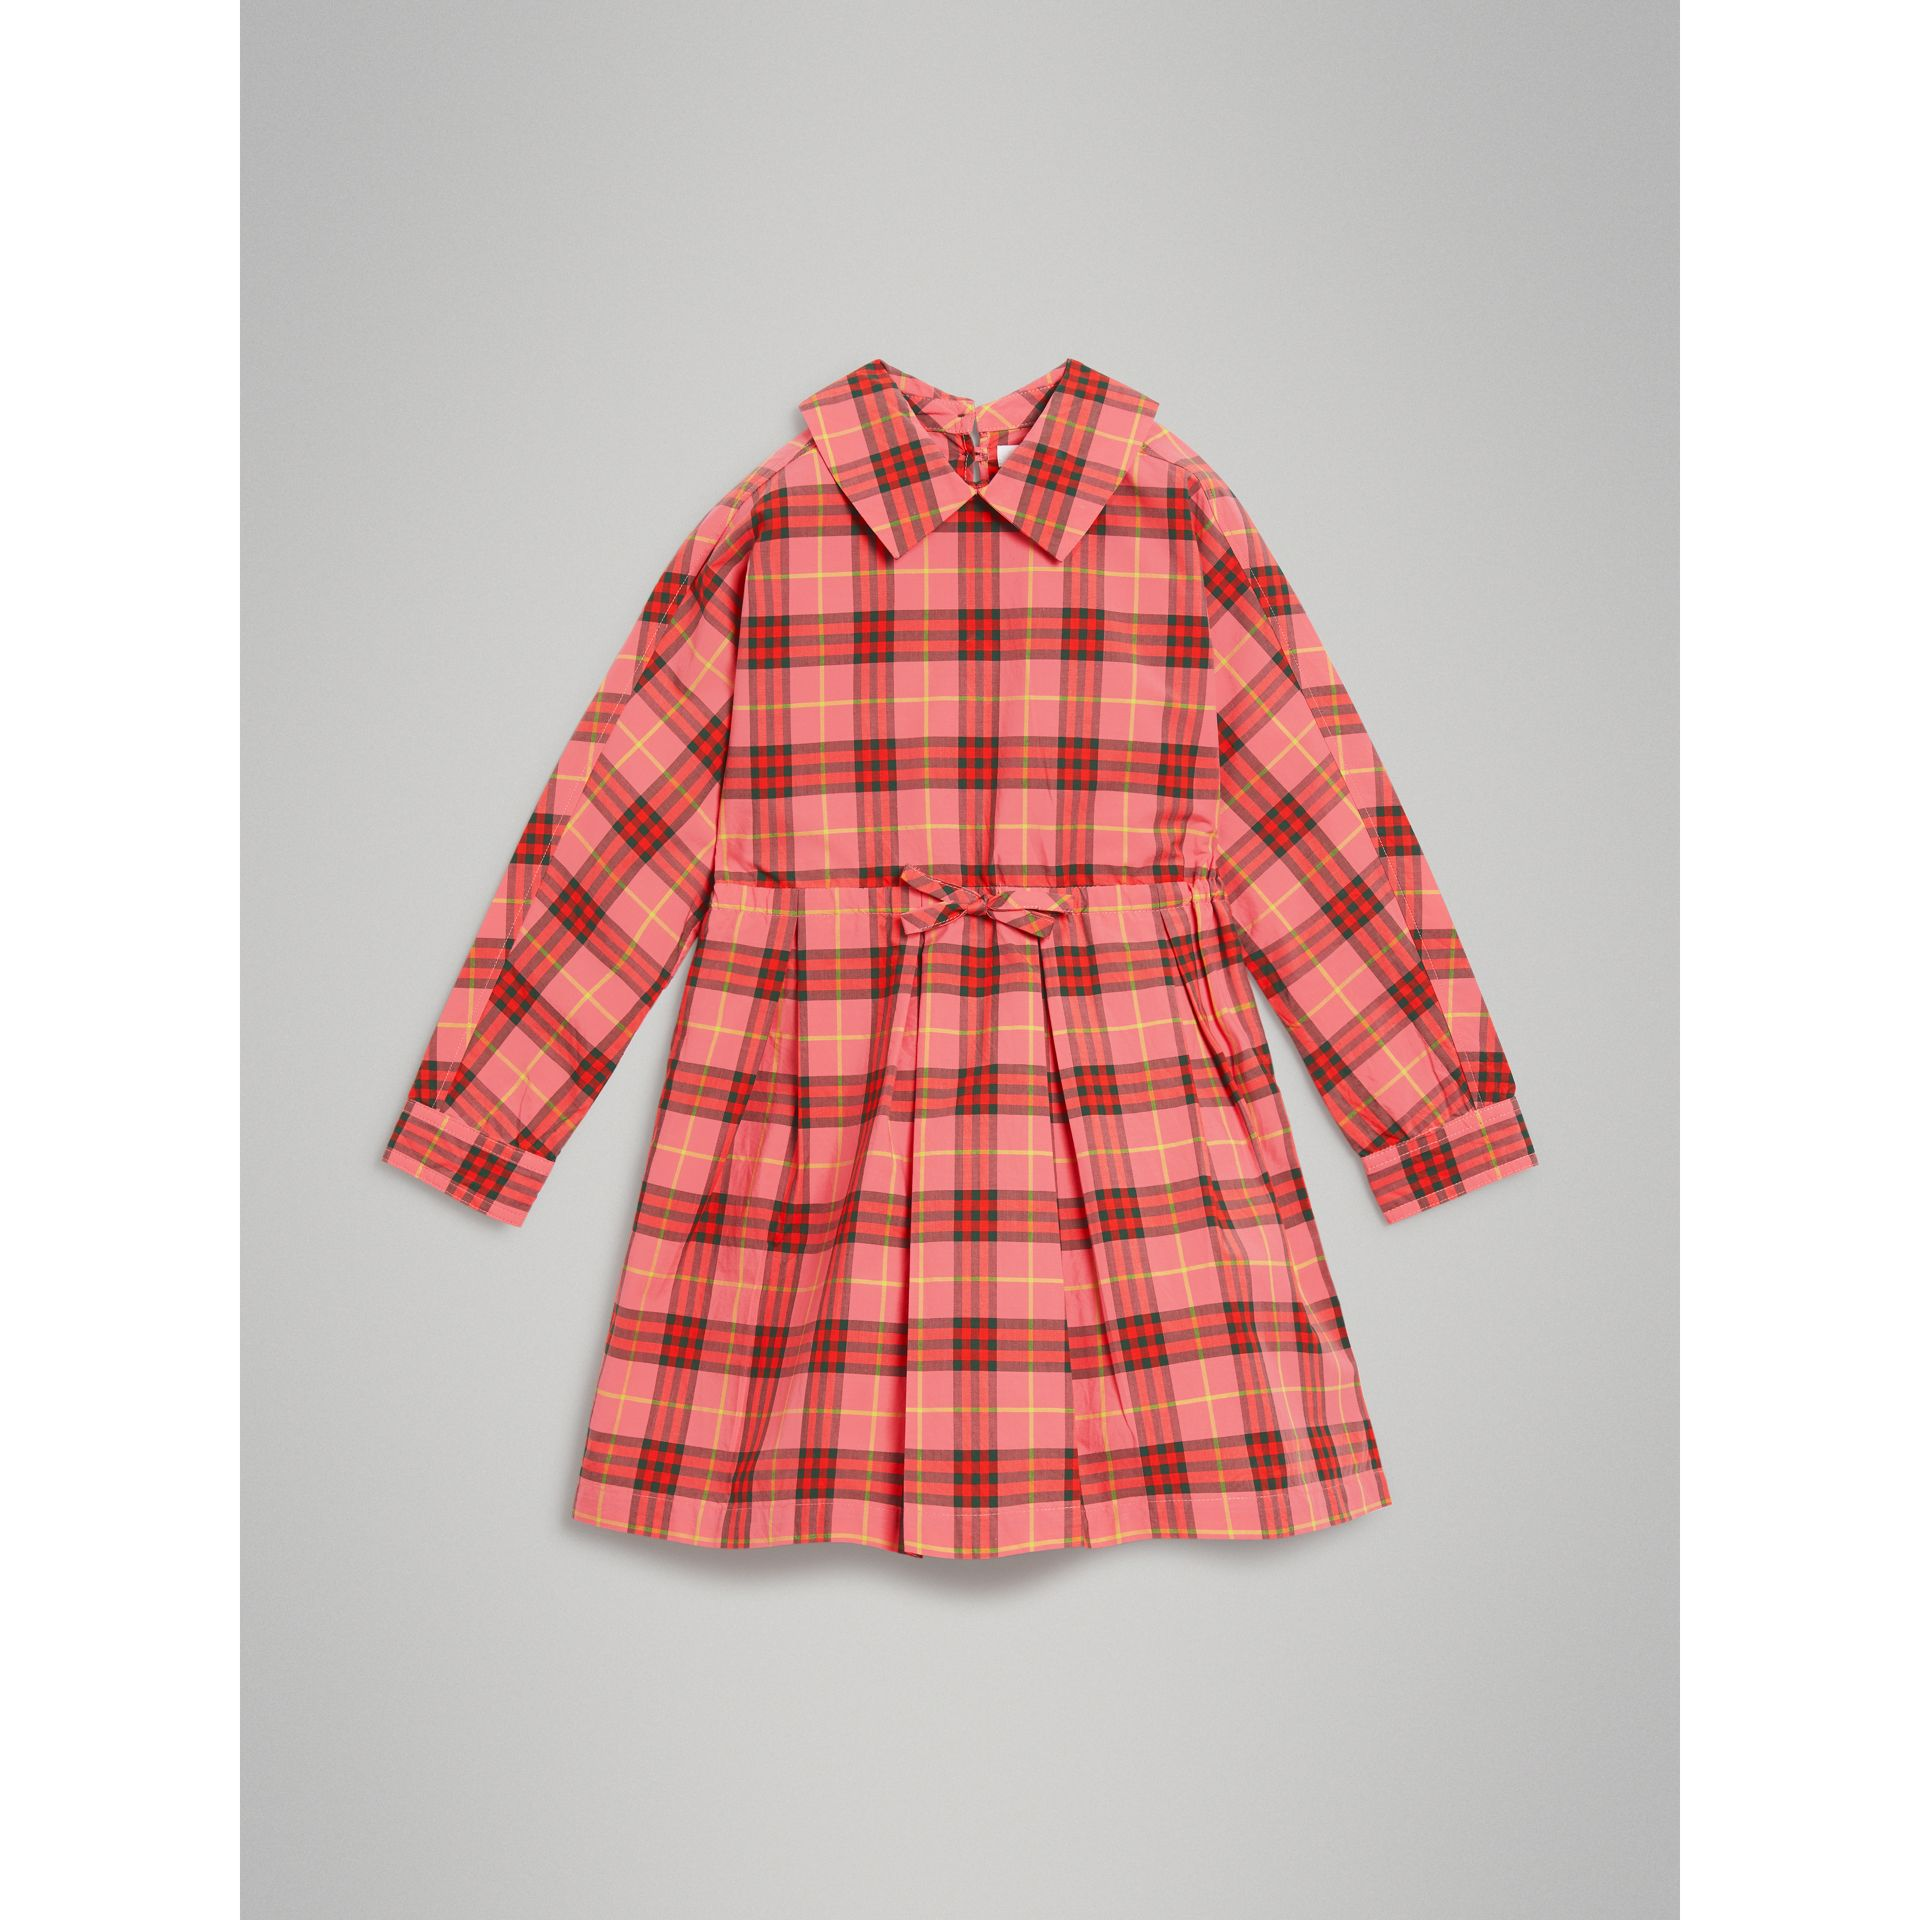 Robe à cordon de serrage en coton à motif check (Rouge Corail) - Fille | Burberry - photo de la galerie 0